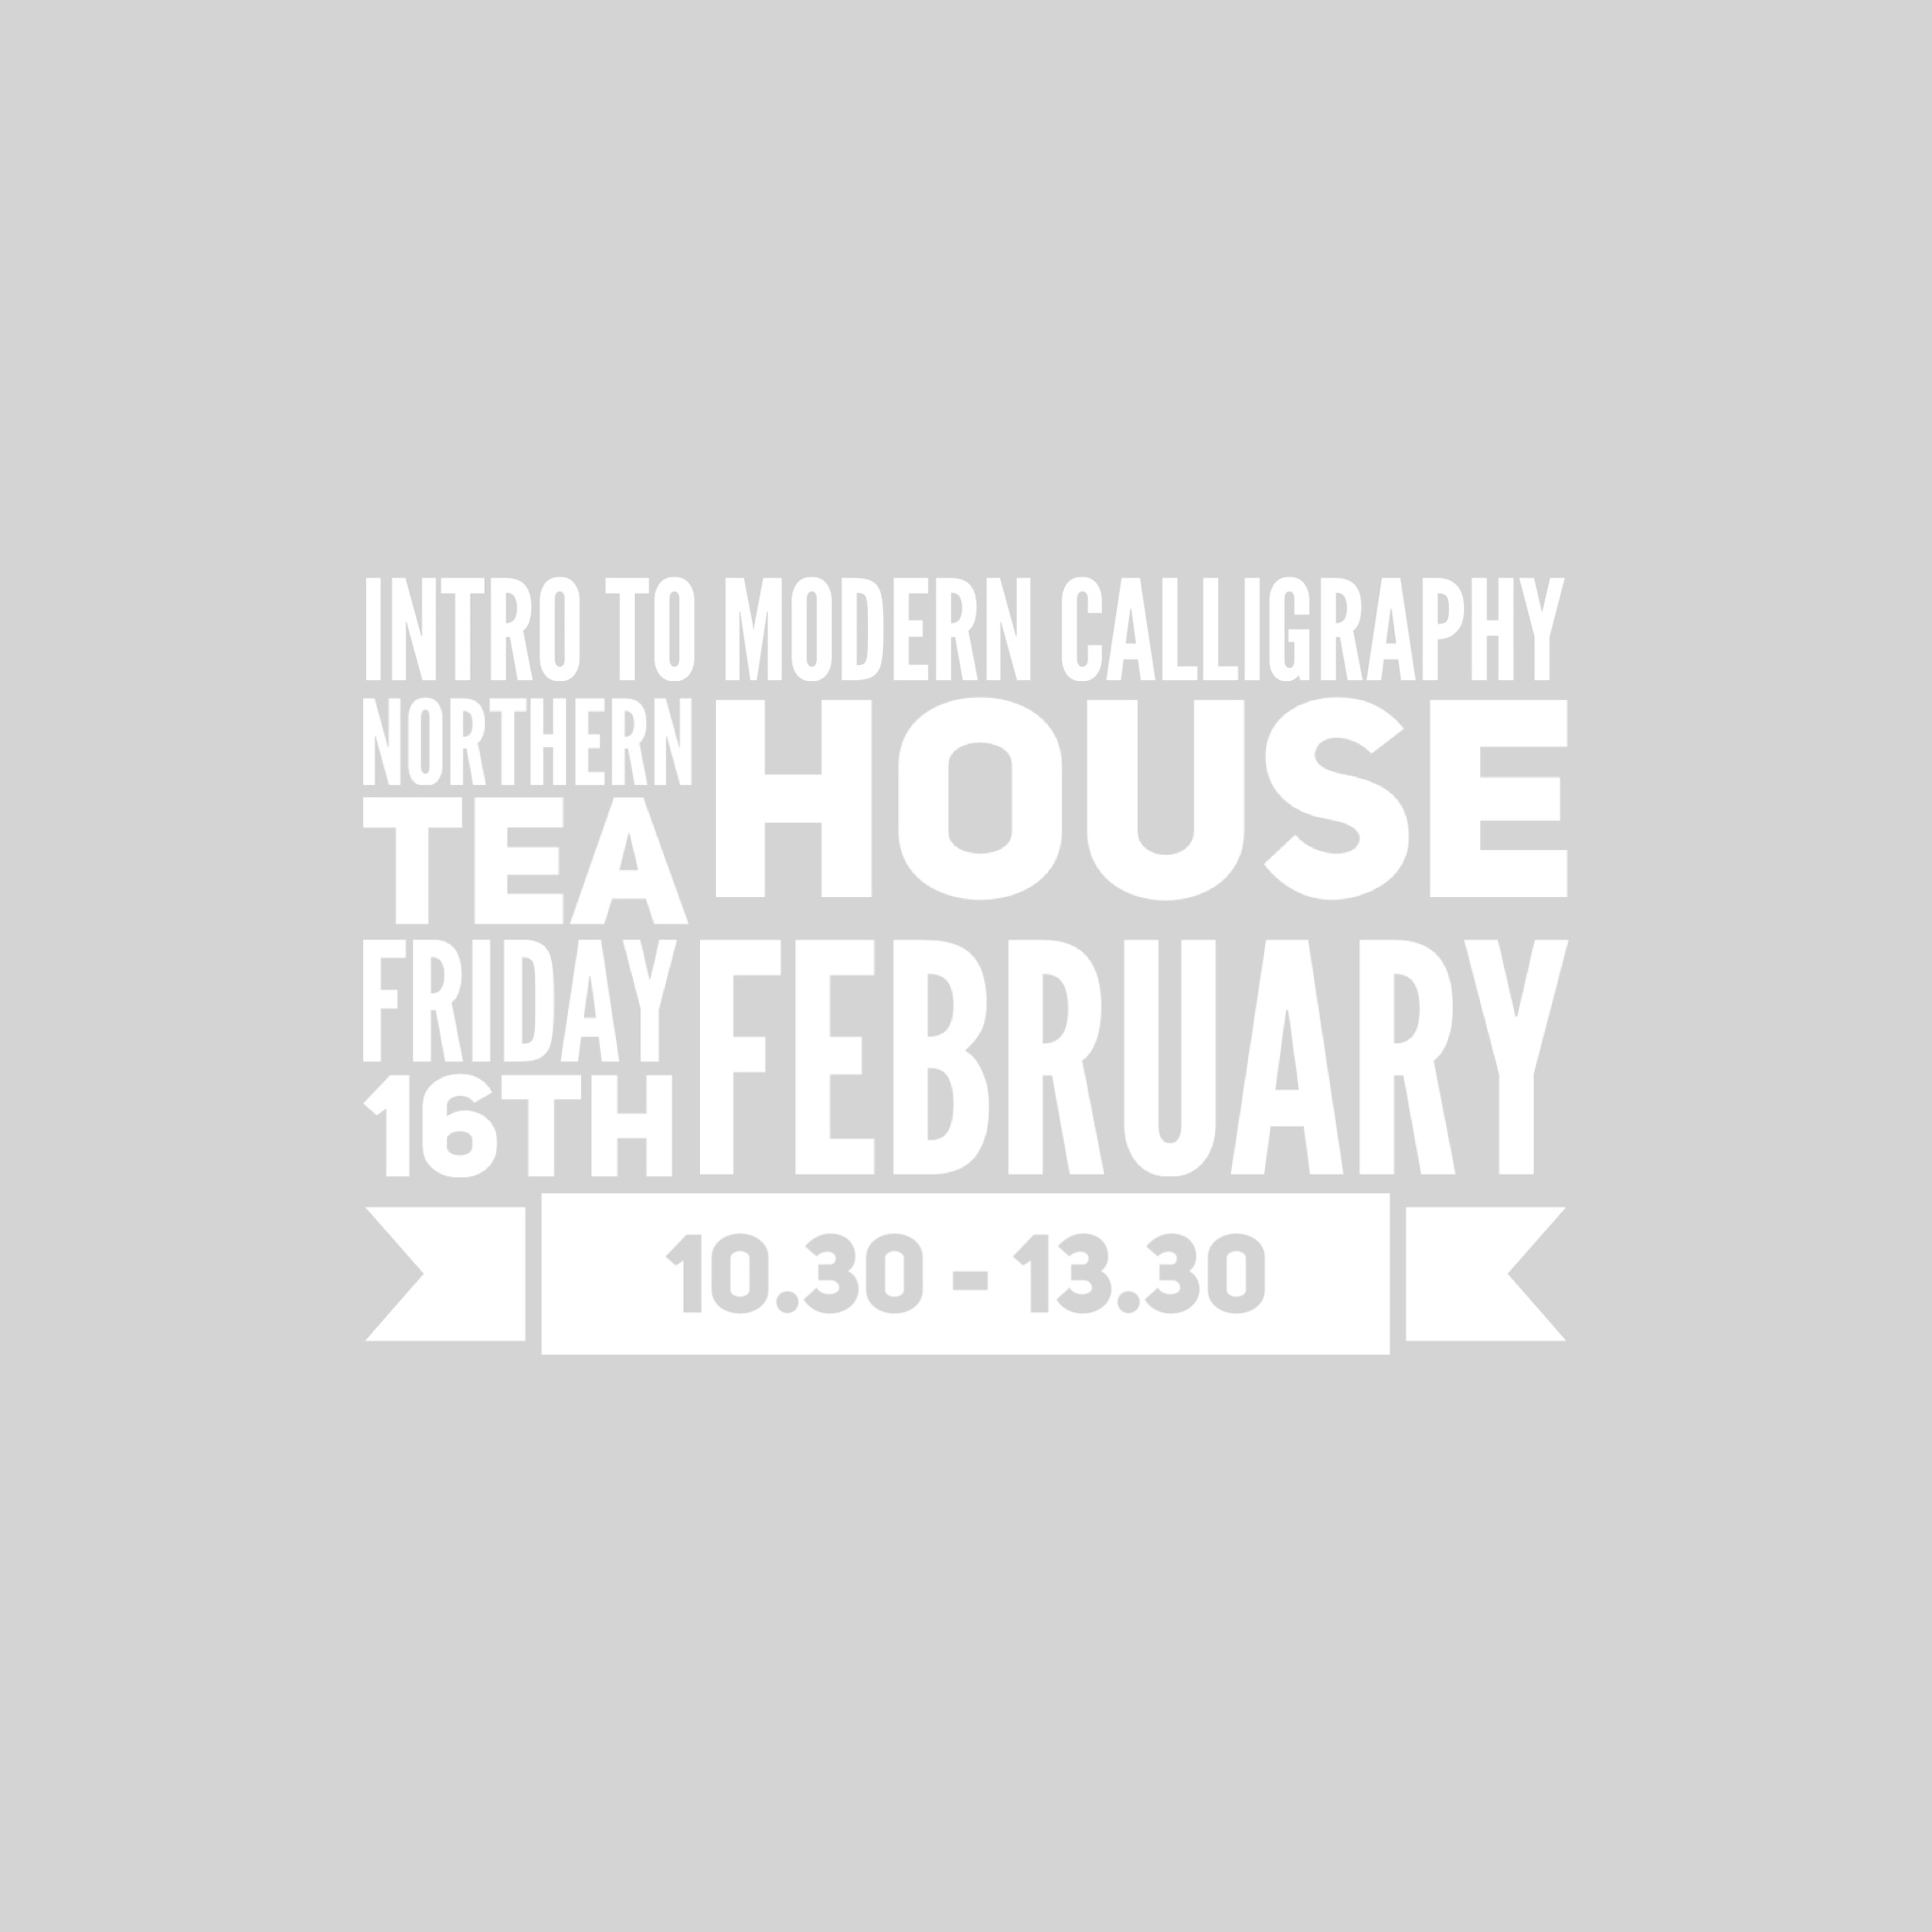 calligraphy workshop as 16 feb.jpg